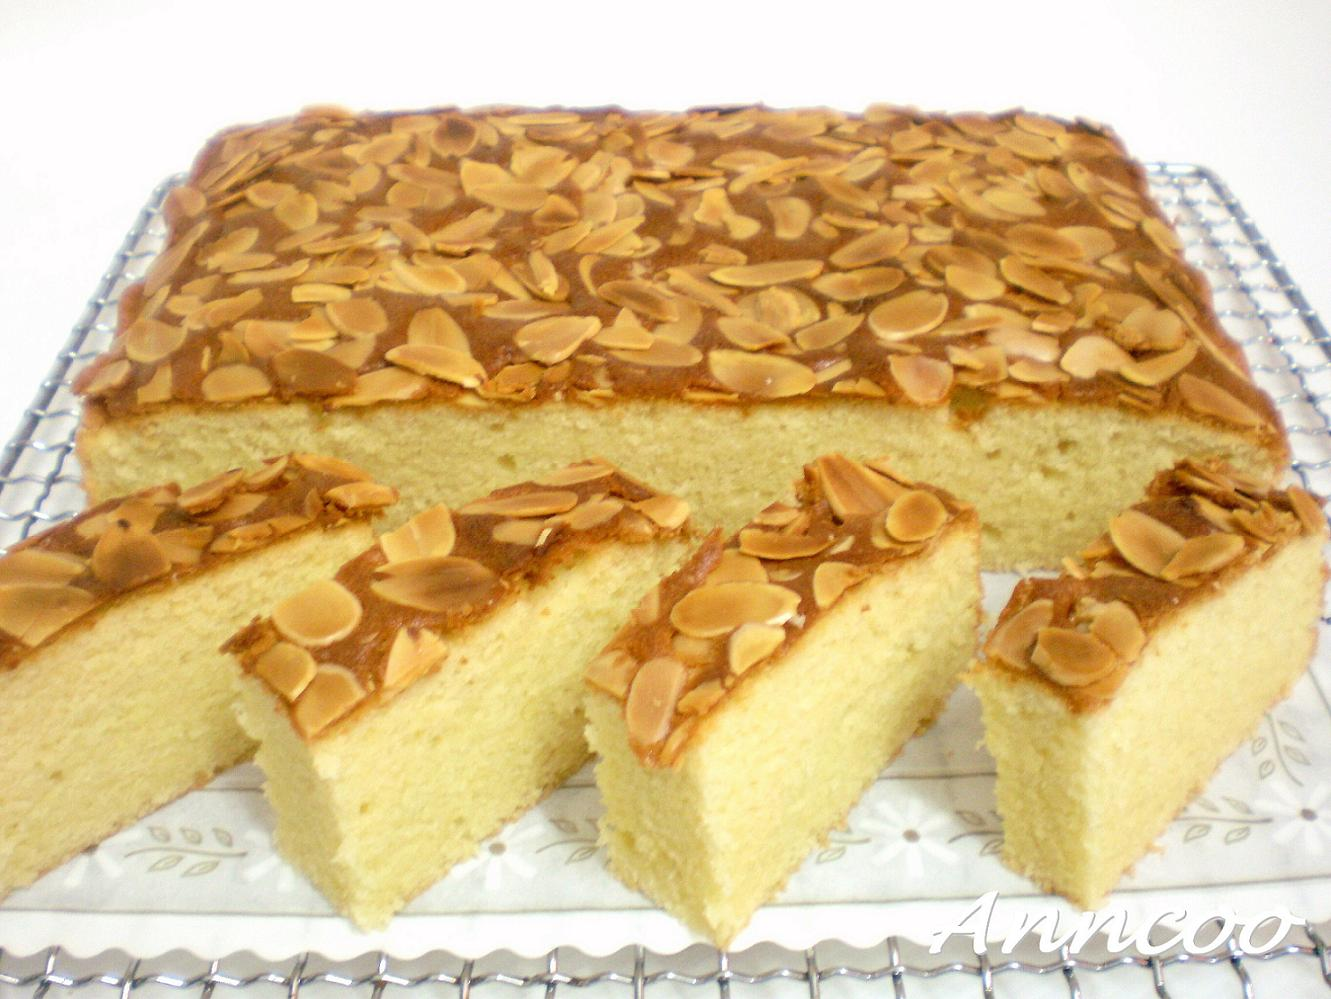 Almond Butter Cake - Anncoo Journal